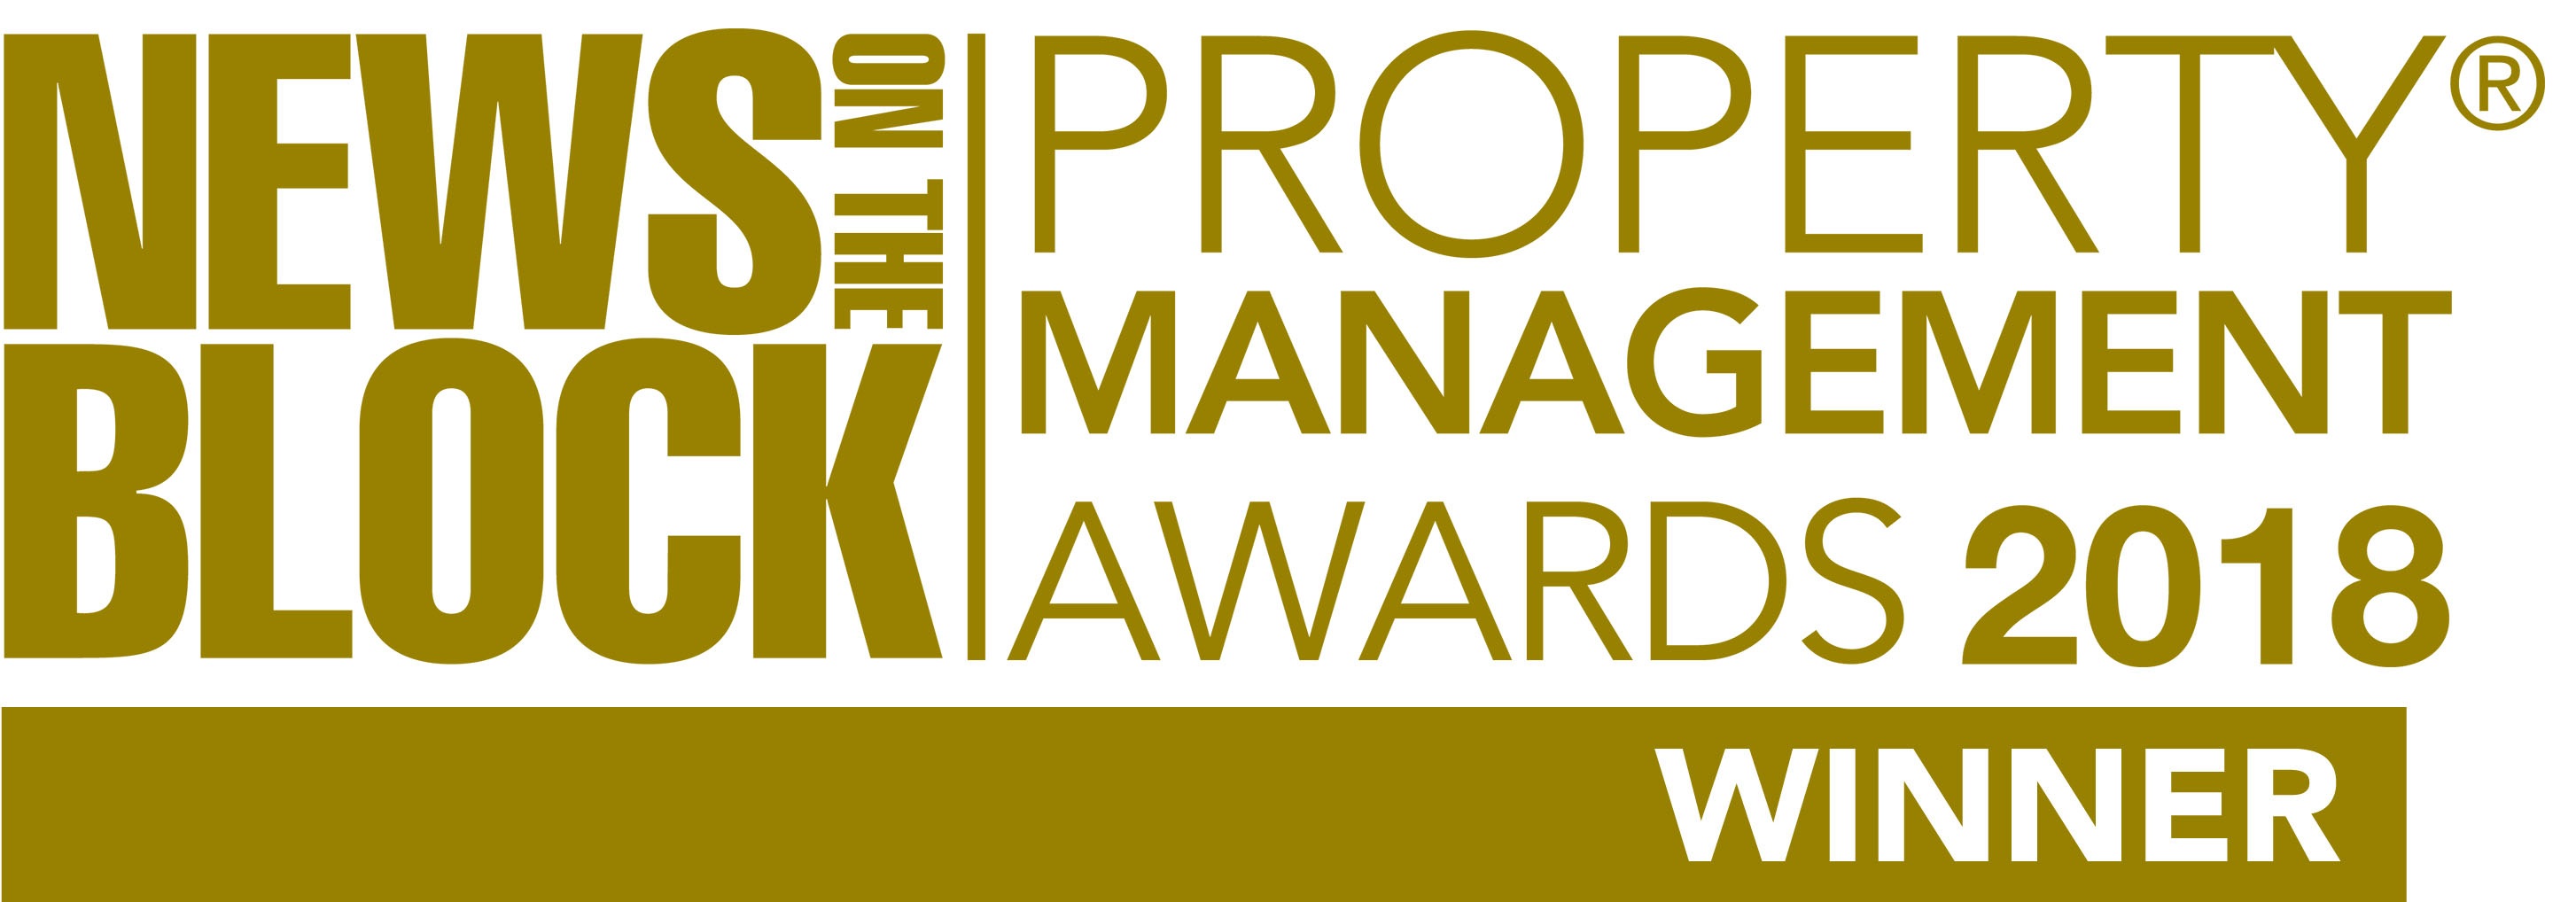 PropTech Company of the Year